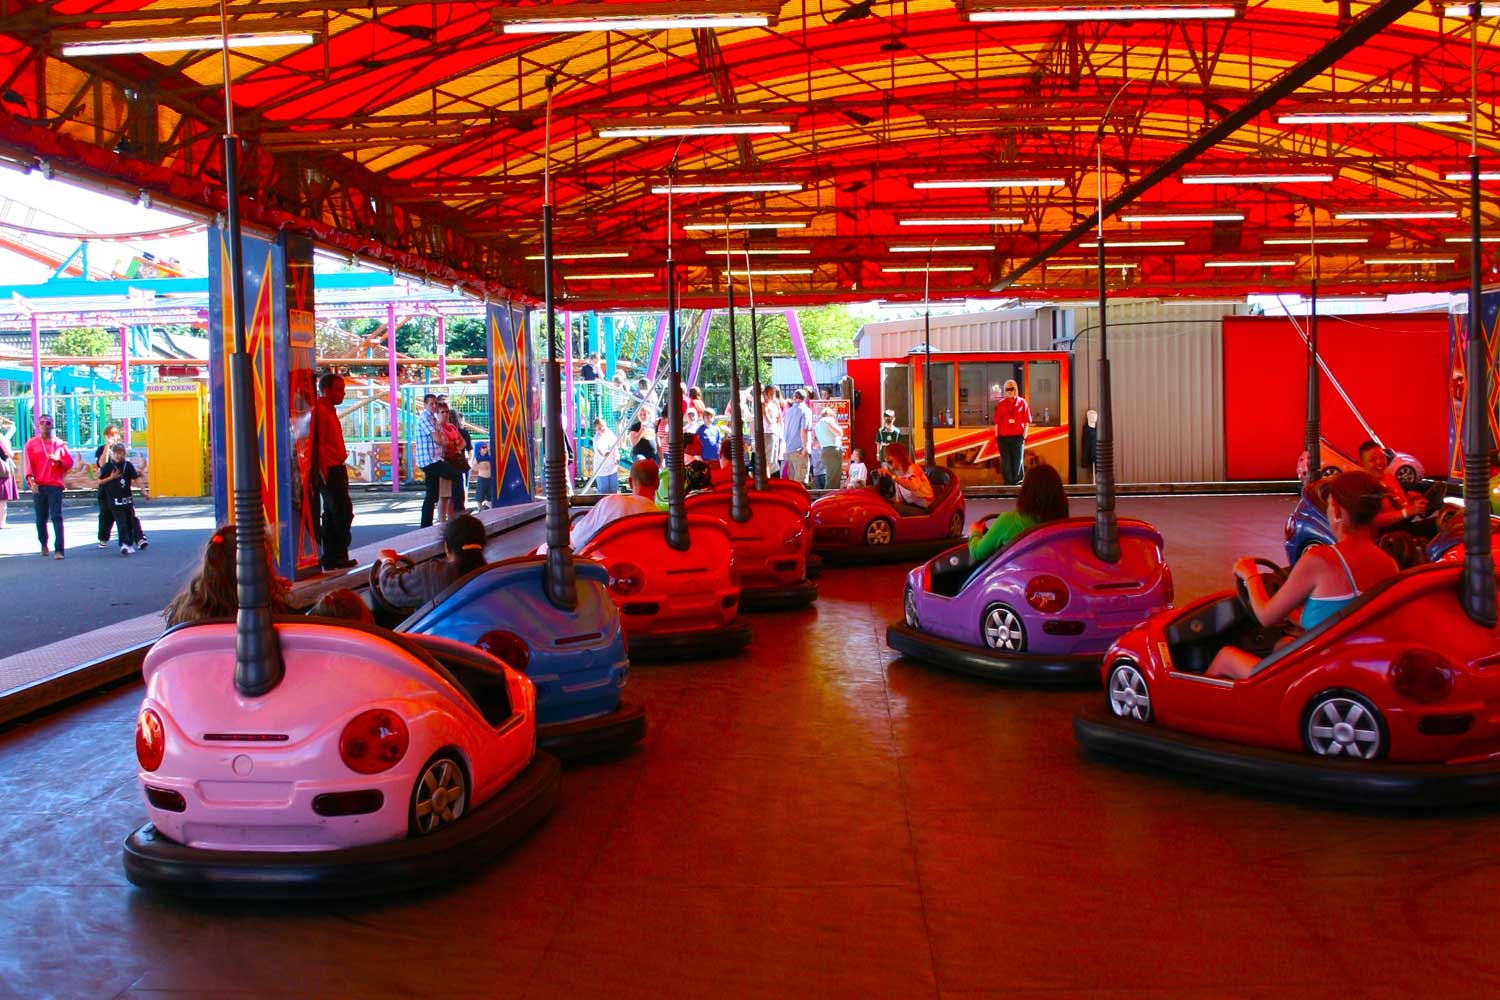 The Dodgems Fantasy Island